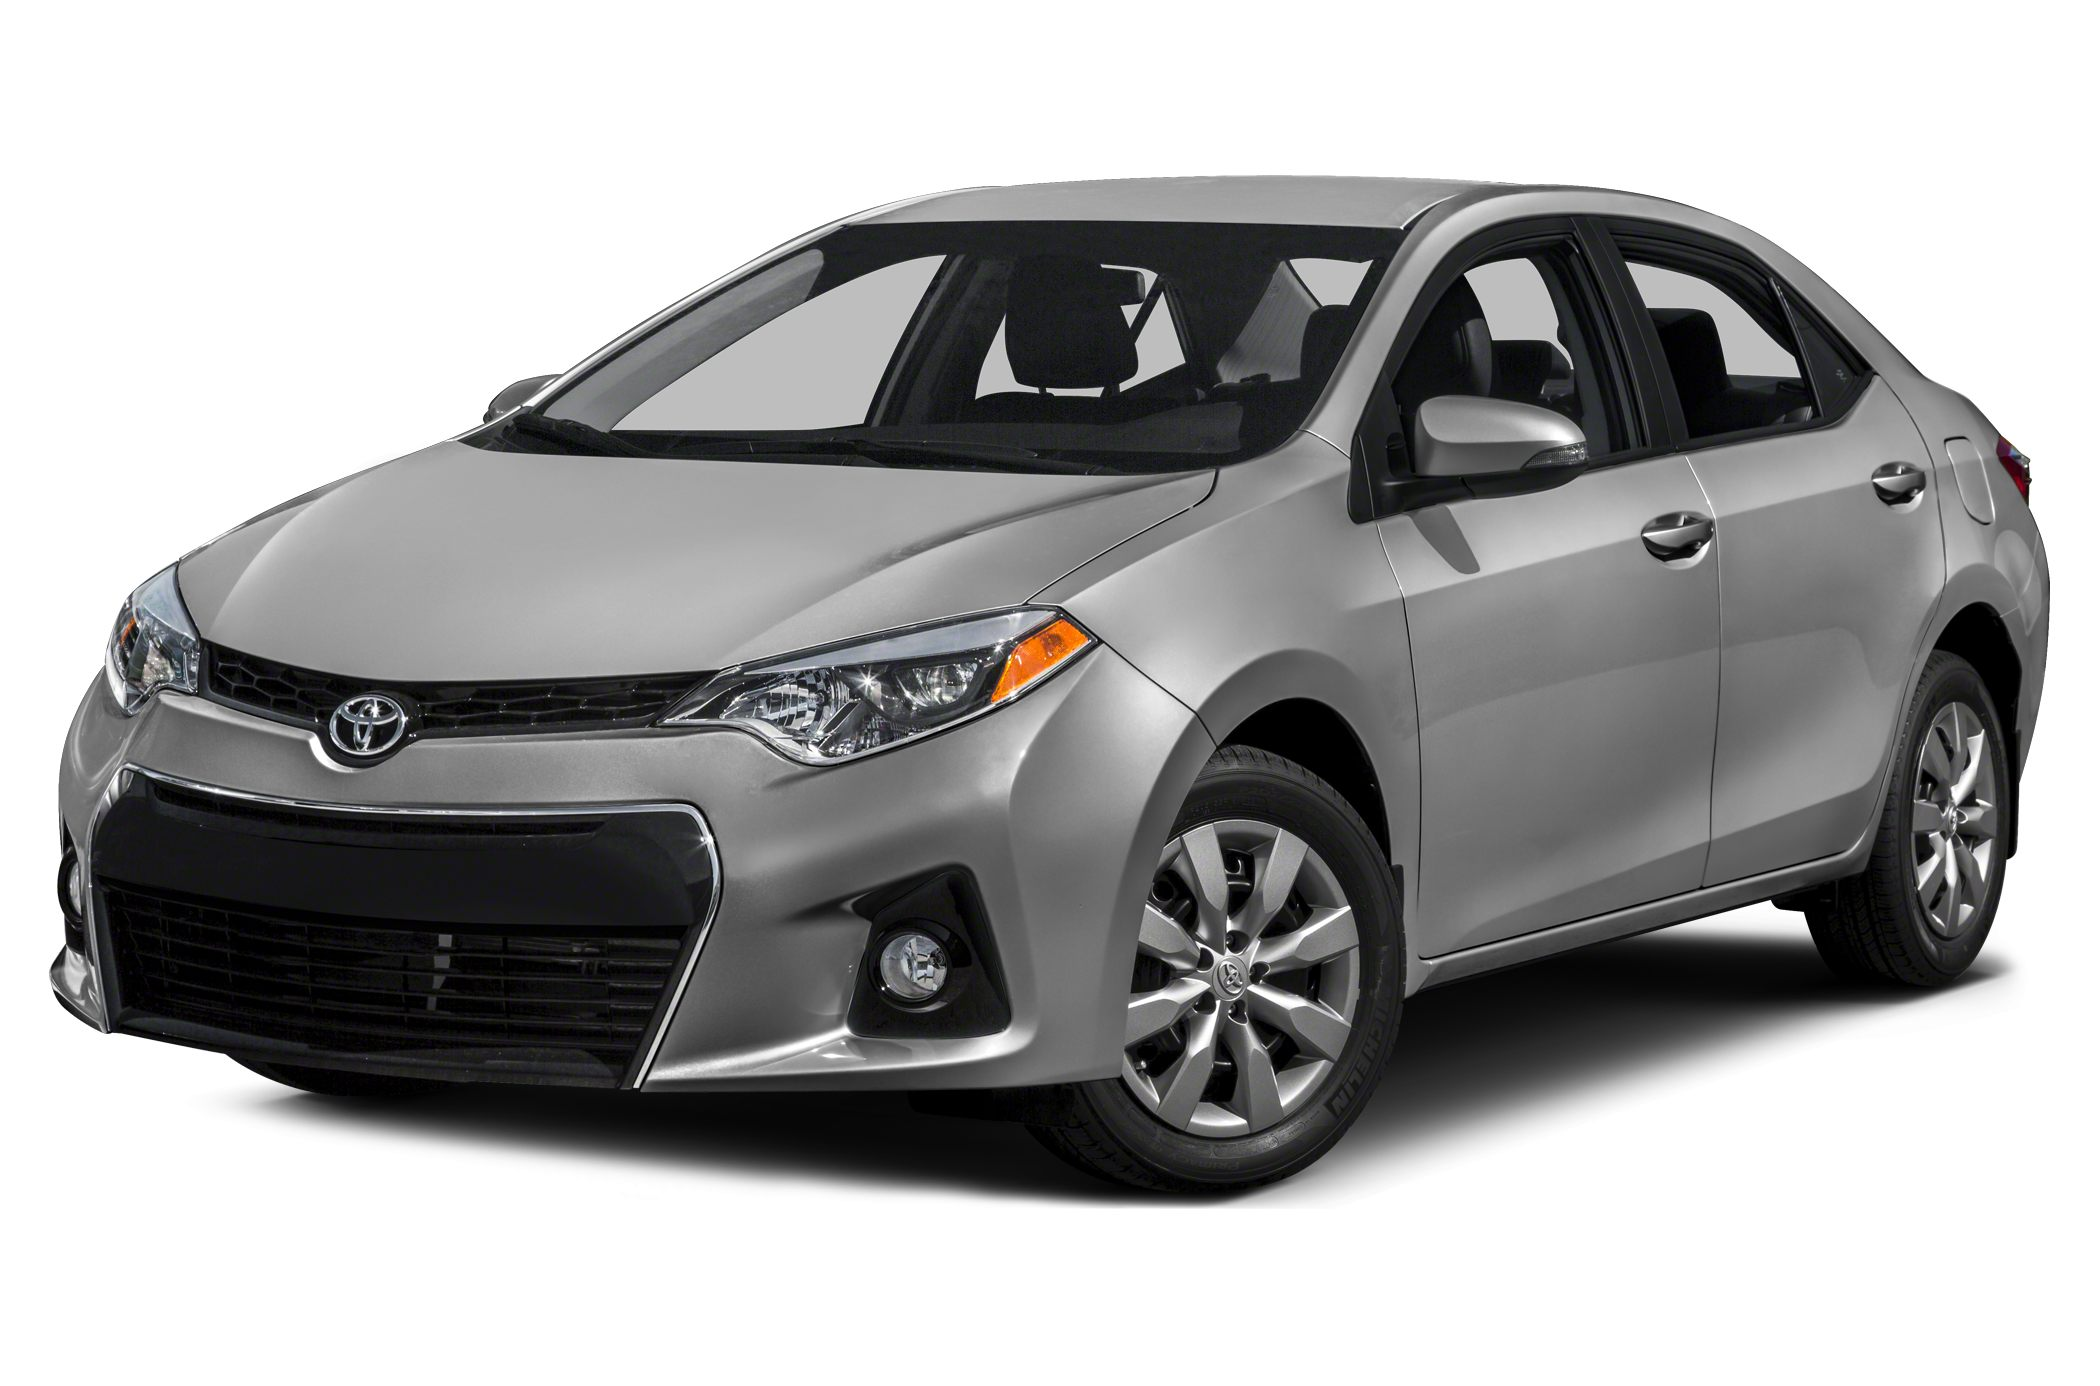 2015 Toyota Corolla S Plus Sedan for sale in Superior for $22,270 with 2 miles